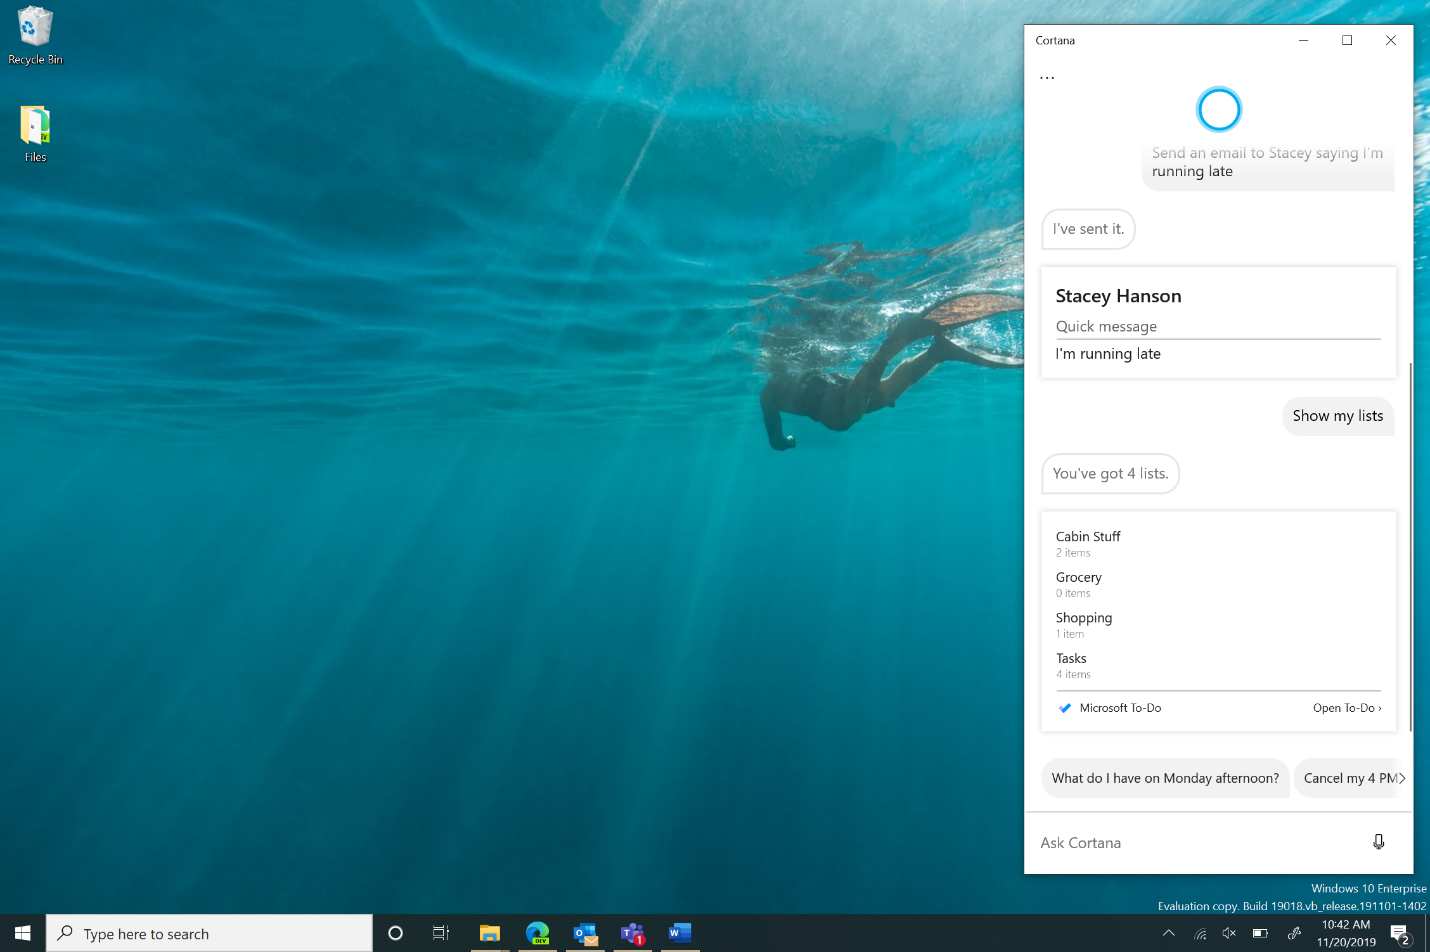 Windows preview build desktop with the new Cortana on Windows (Beta) open, showing Cortana sending an email to Stacey that you're running late.